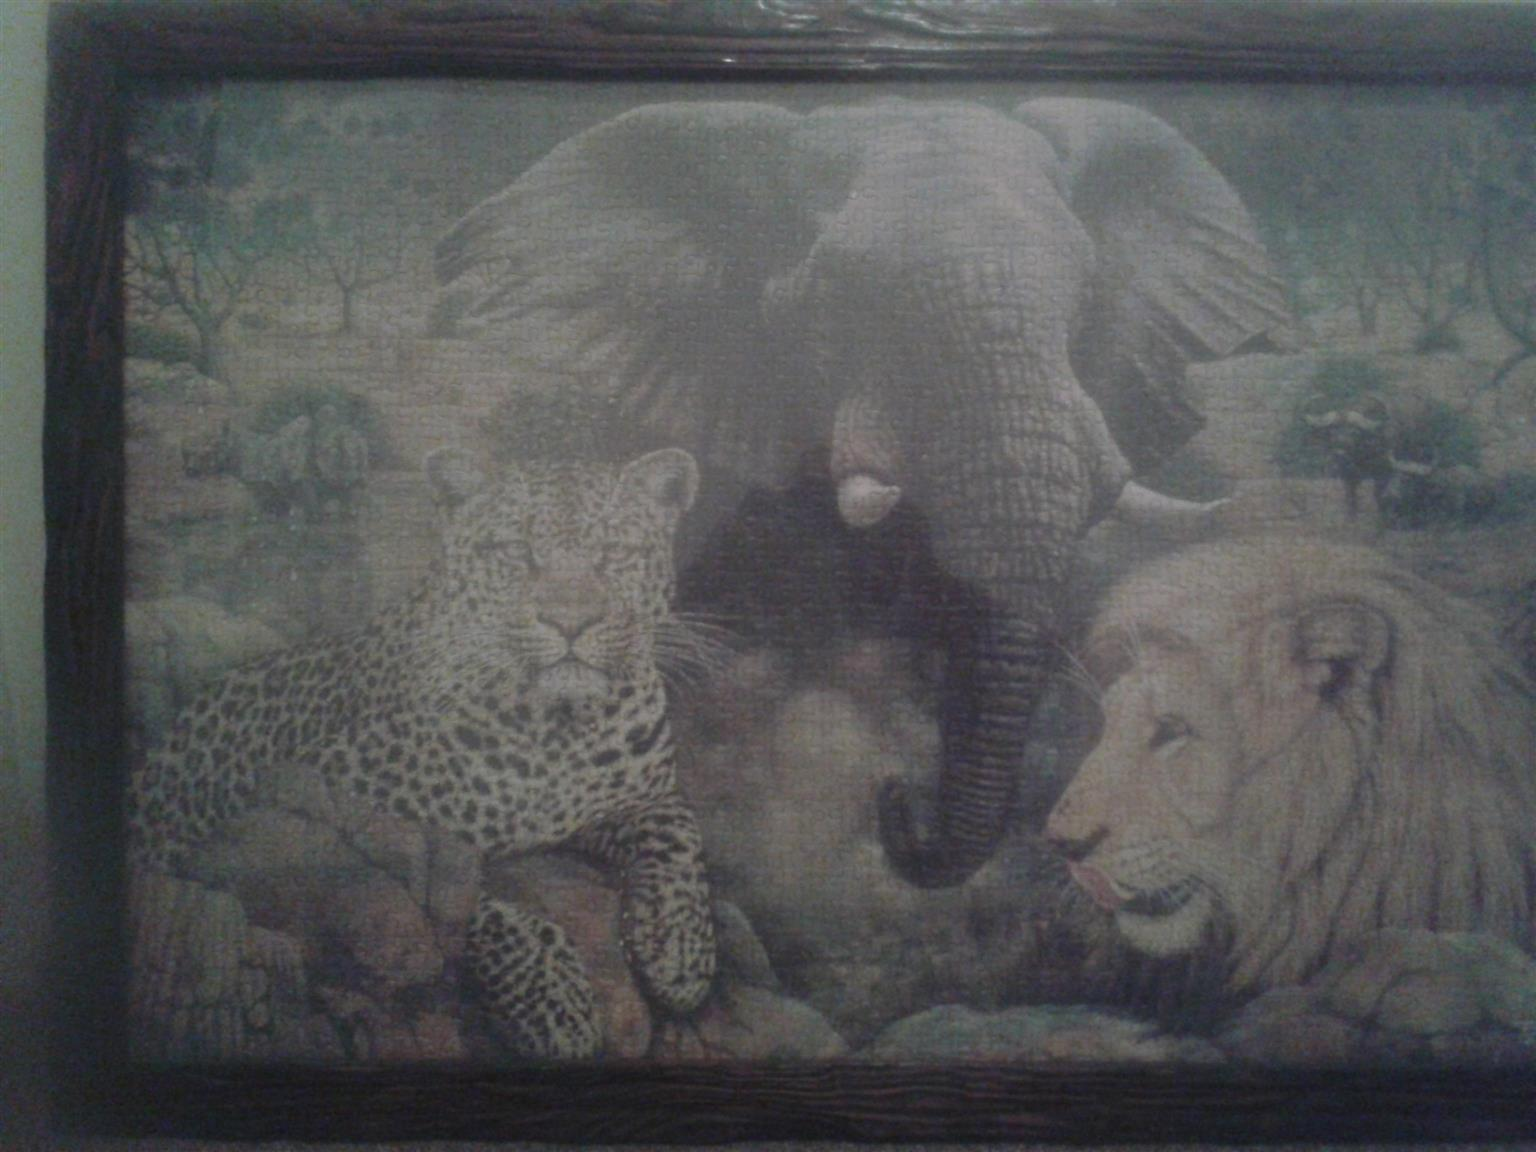 Framed Jigsaw 1600 puzzle of Big Five